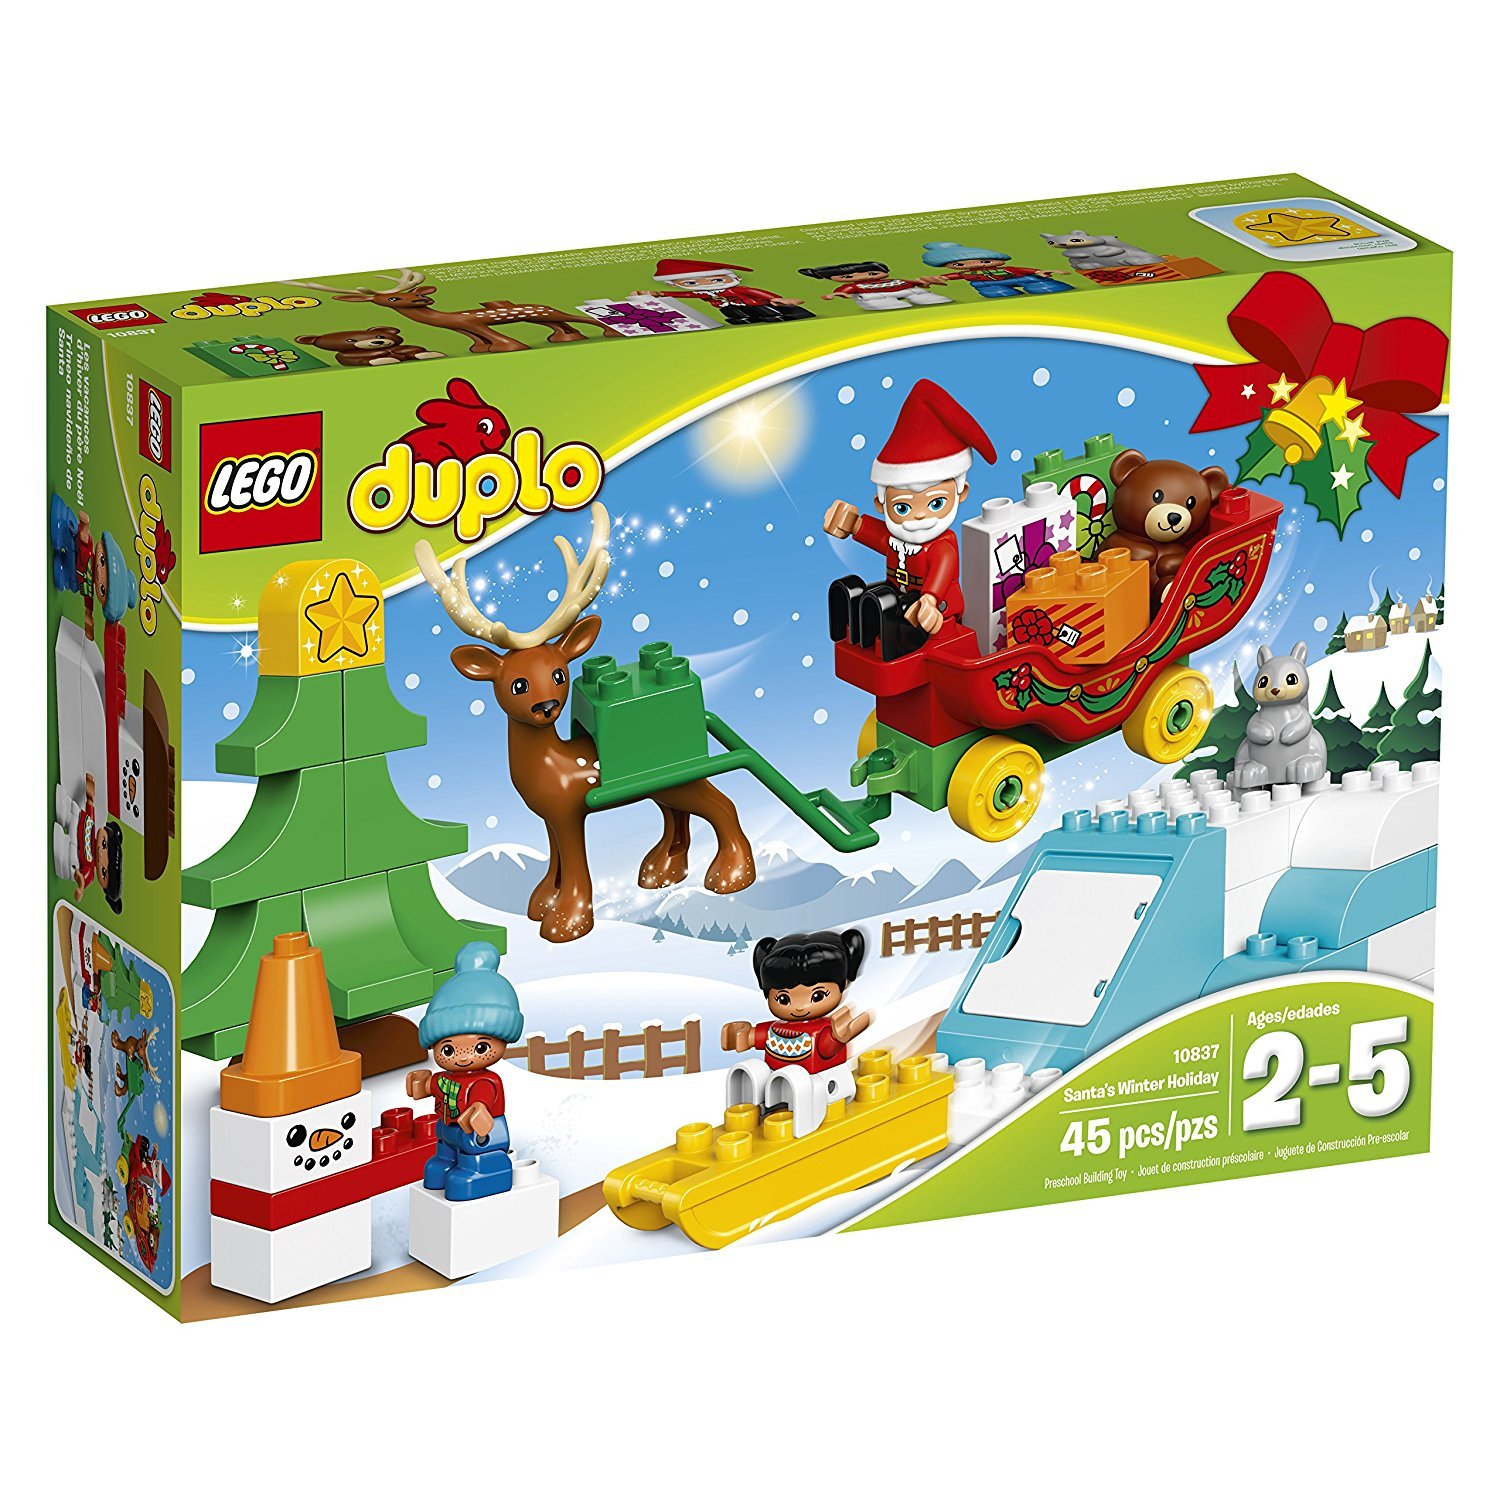 Duplo Santa's Winter Holiday